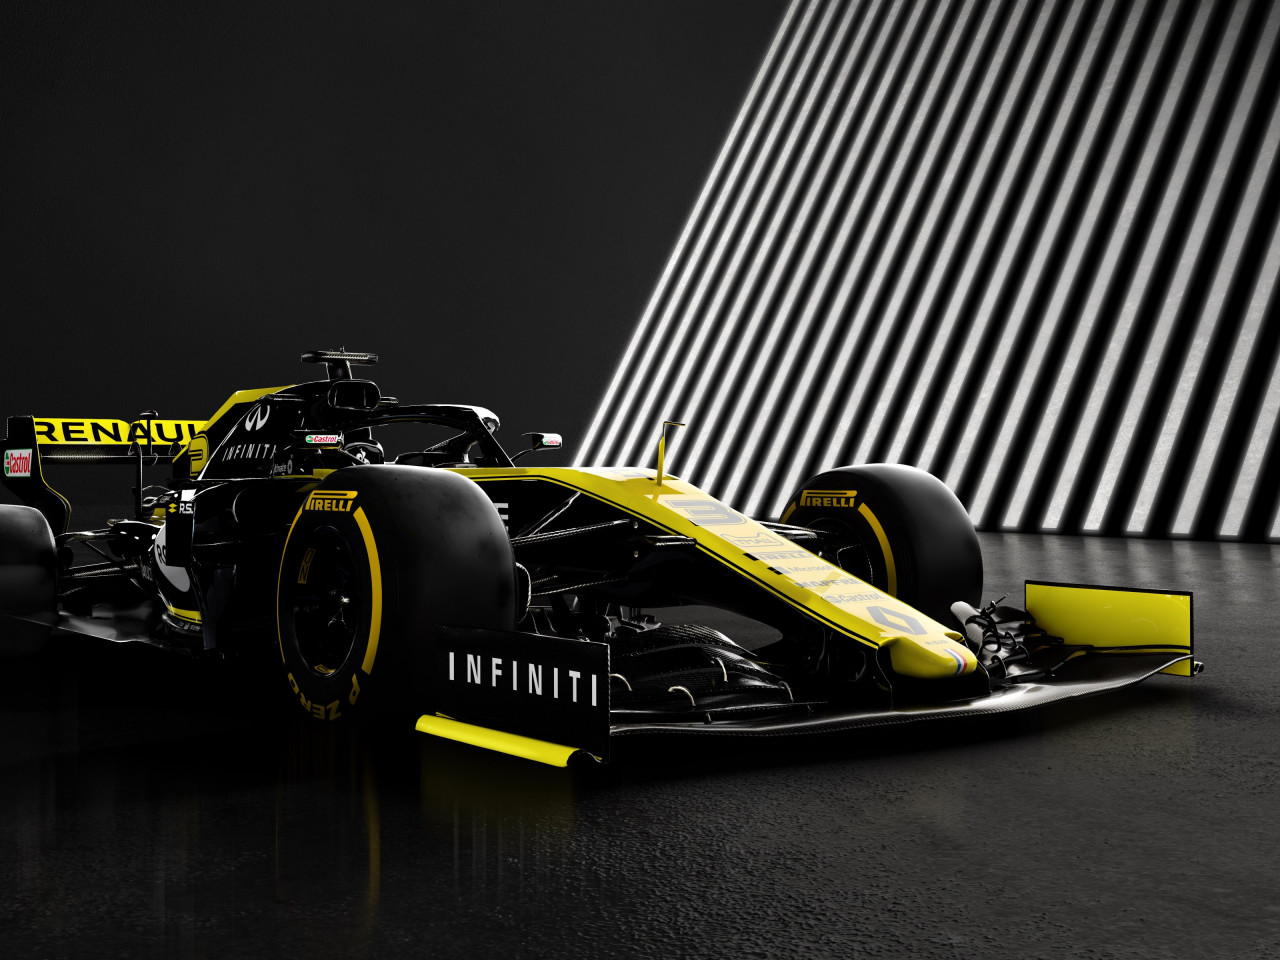 Download wallpaper Renault F1 RS19 1280x960 1280x960